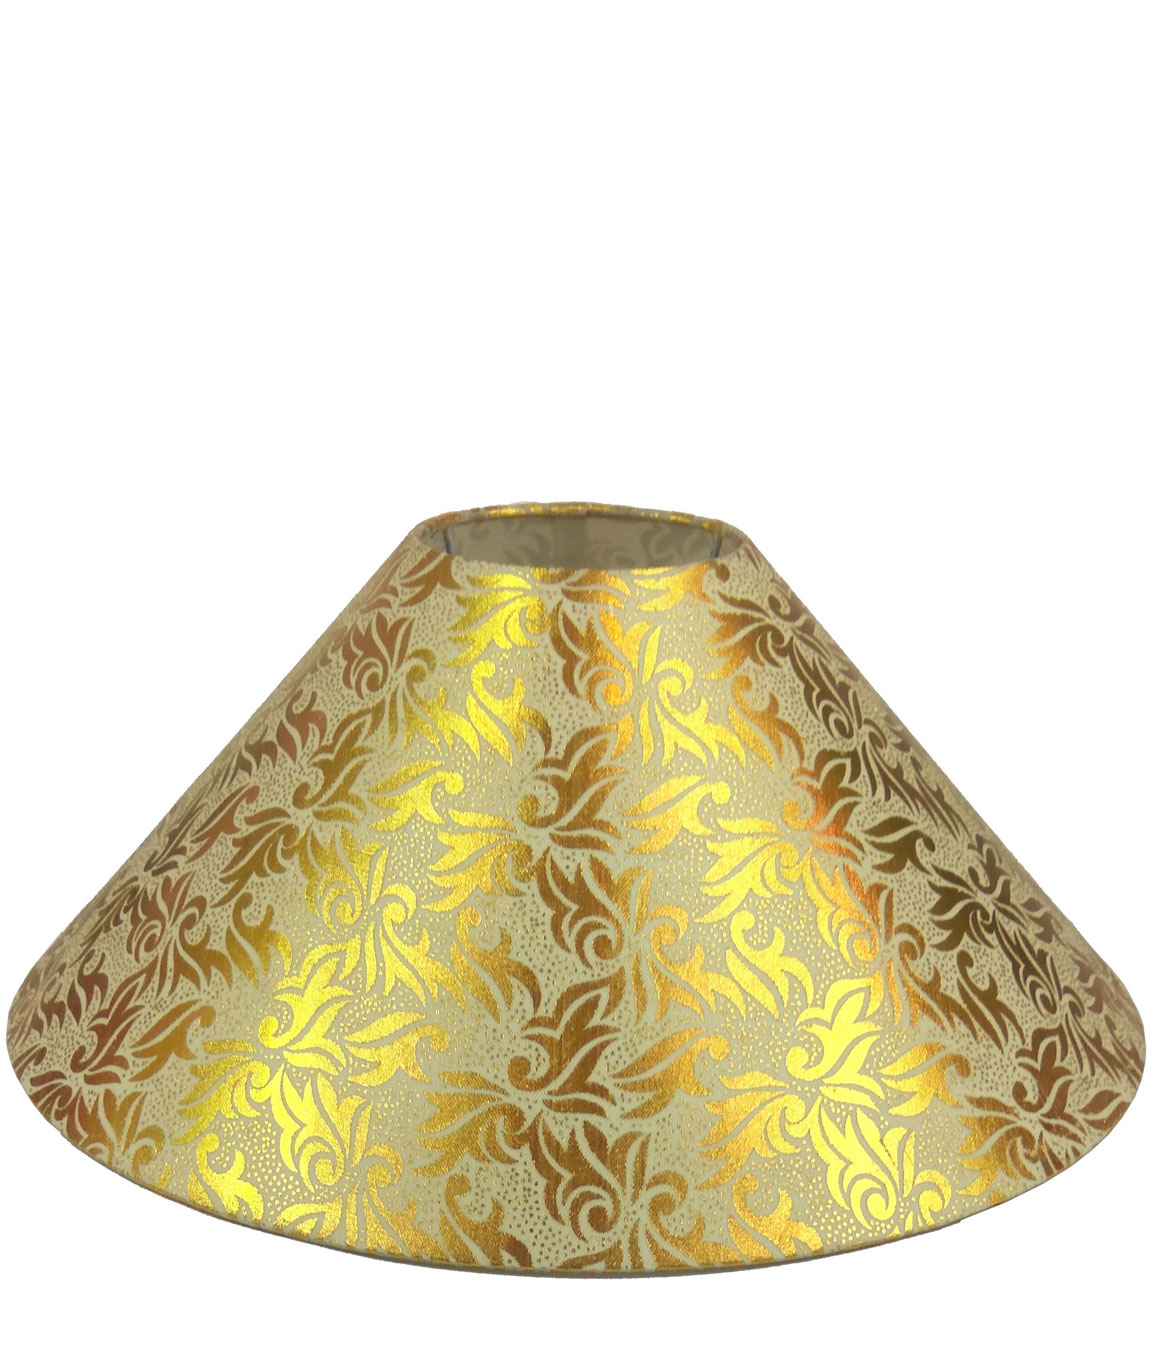 RDC 13 Inches Round Cream with Golden Designer Lamp Shade for Table Lamp